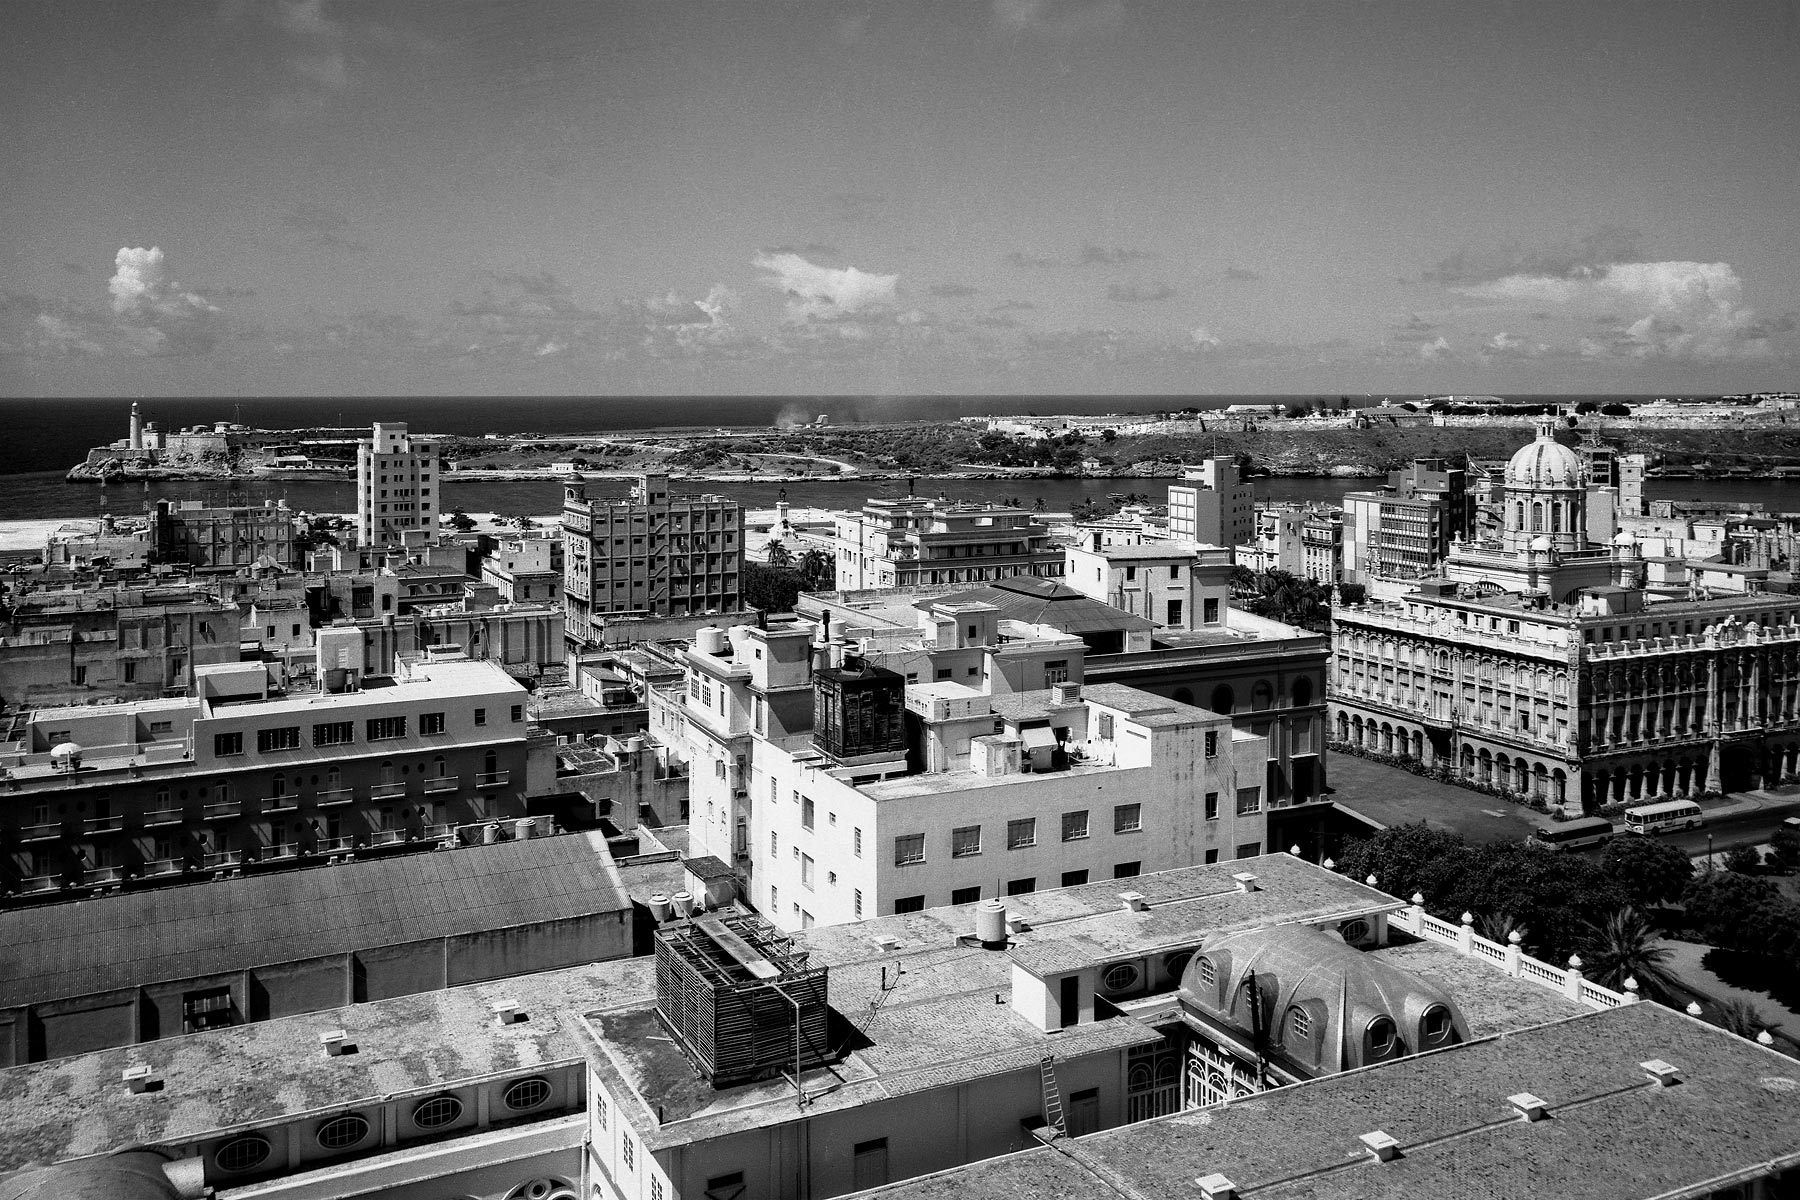 Morro Castle and Presidential Palace skyline view 1954